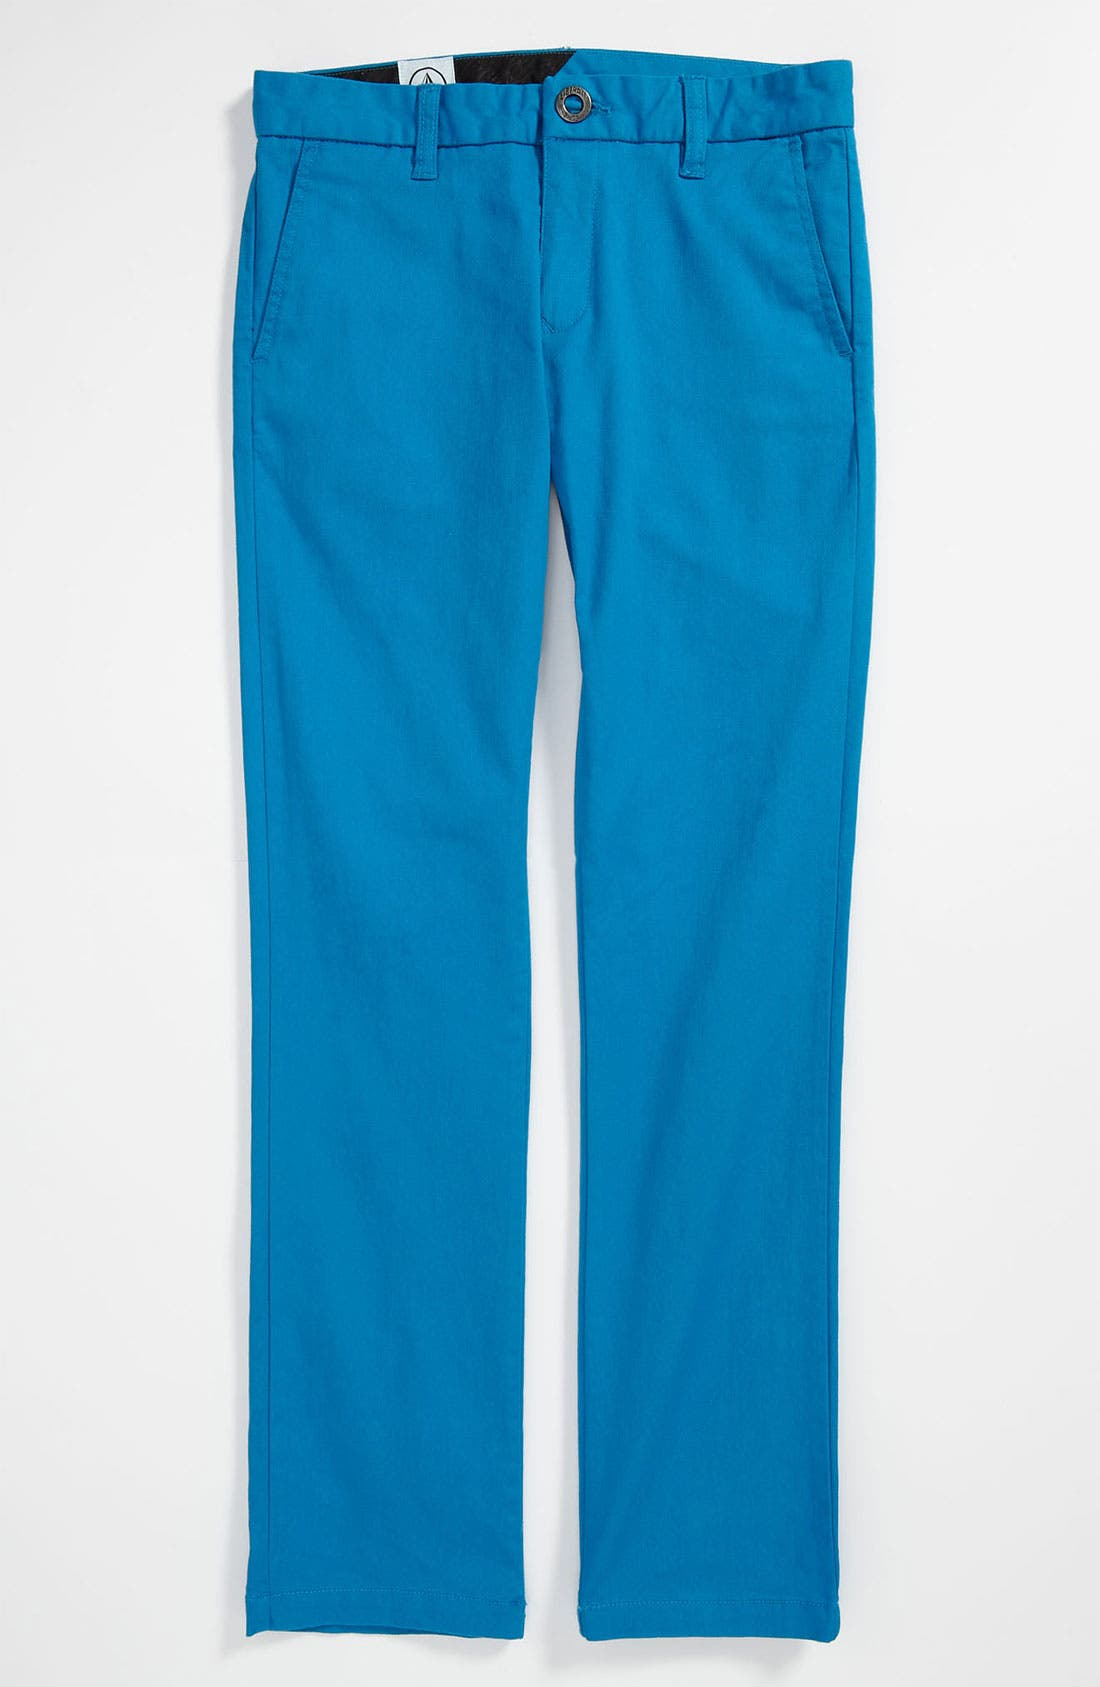 Main Image - Volcom '2 x 4' Chino Pants (Big Boys)